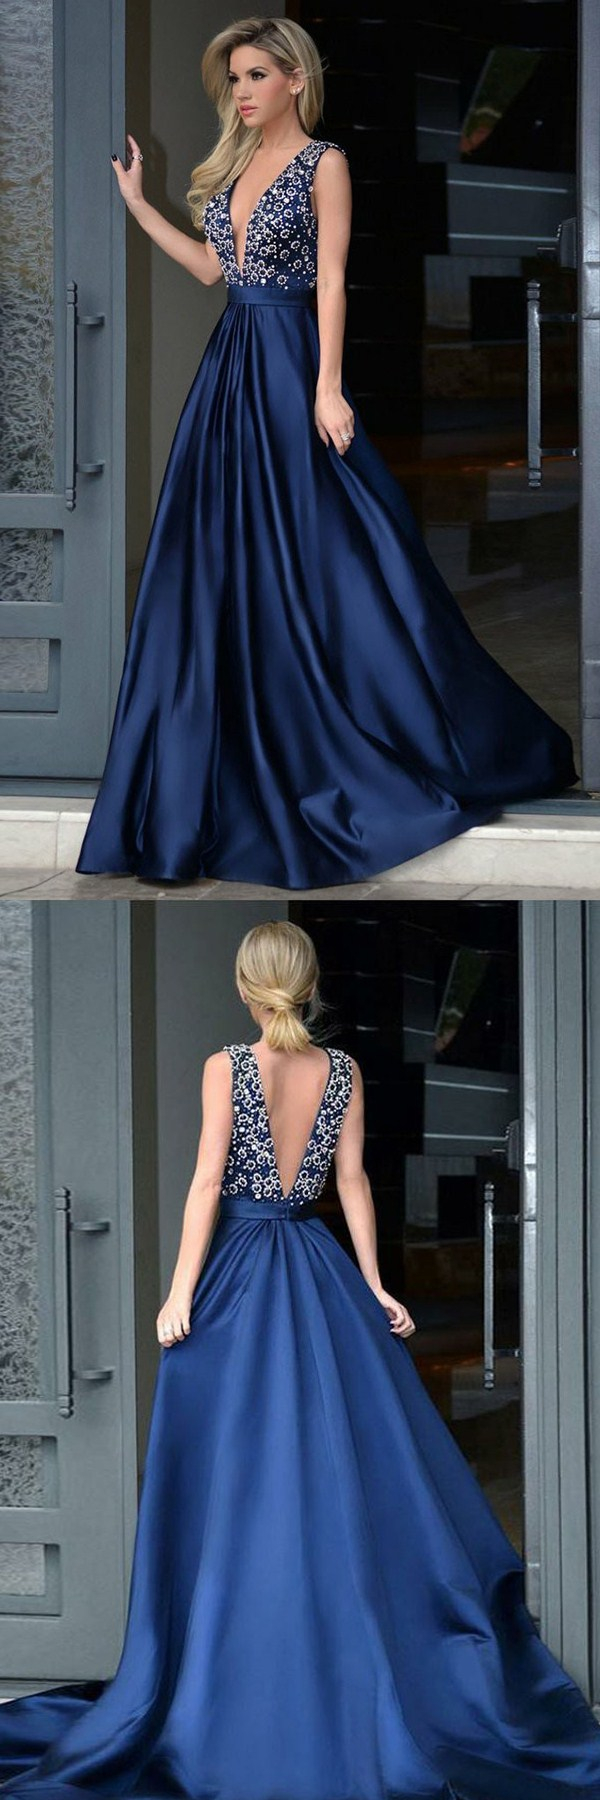 Aline deep vneck royal blue satin backless prom dress with beading